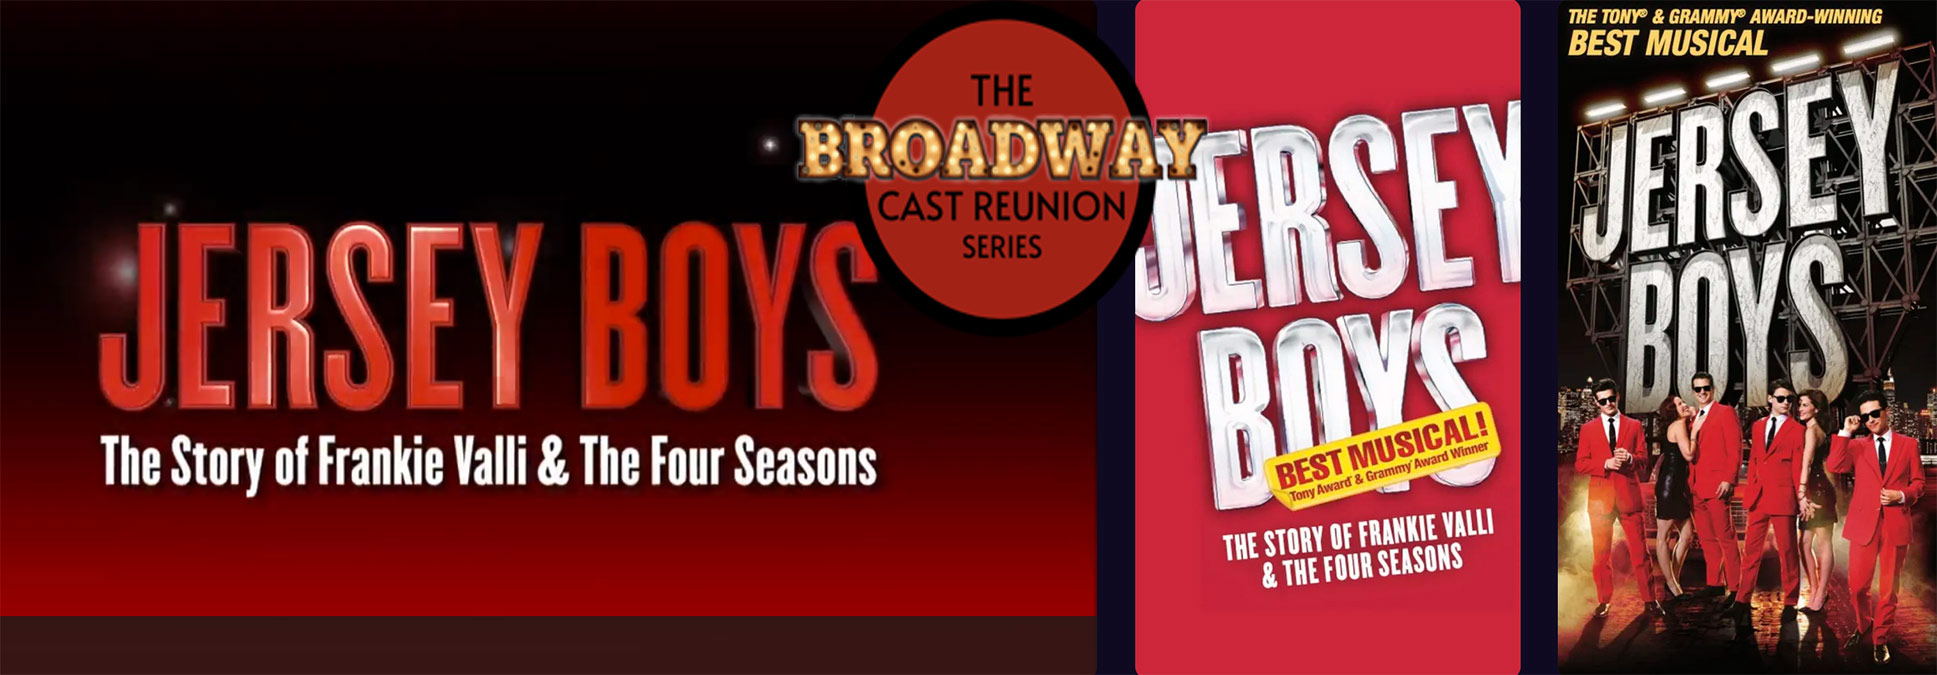 The Broadway Cast Reunion Series The Jersey Boys